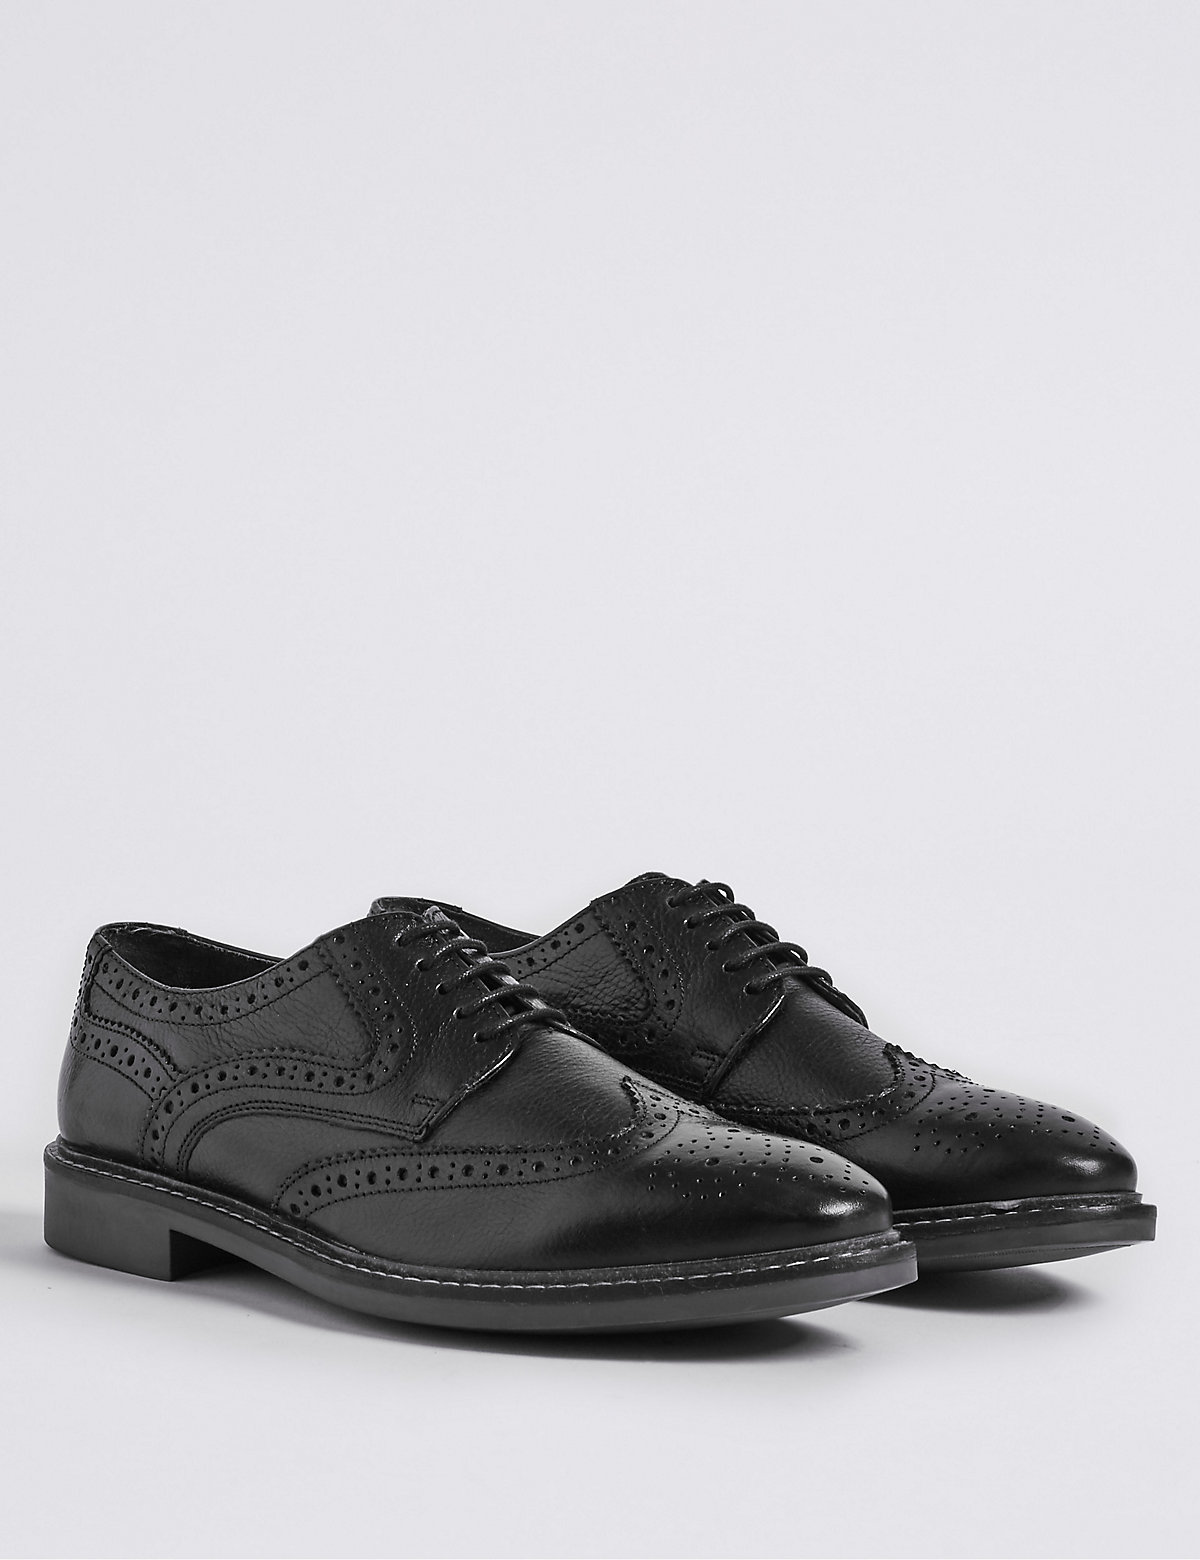 Autograph Big & Tall Leather Red Sole Brogue Shoes